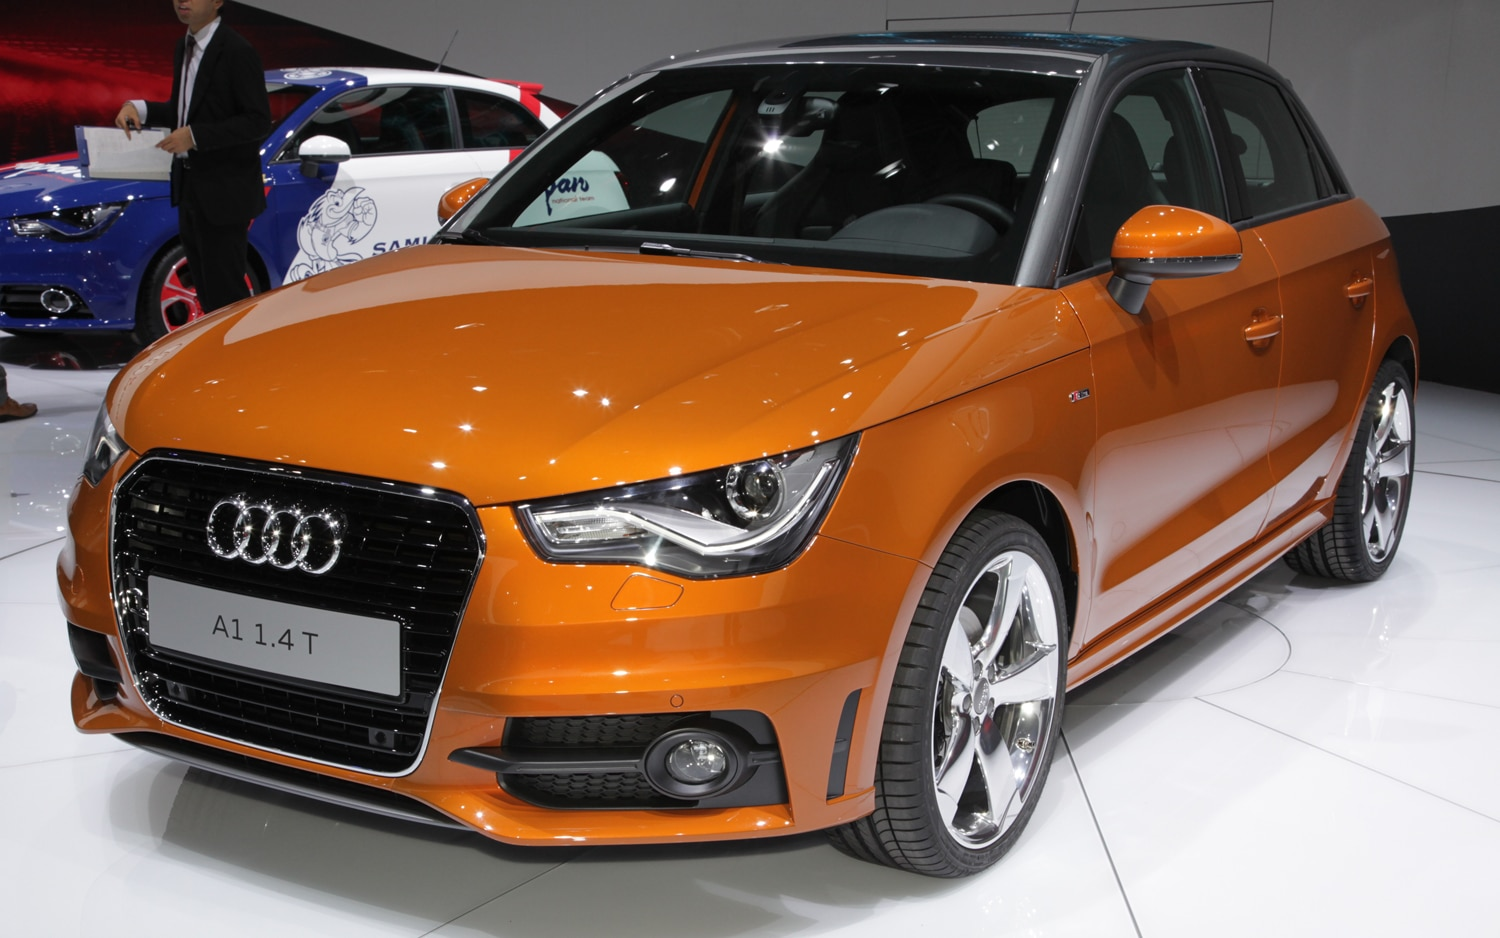 2012 Audi A1 Sportback Front Three Quarter